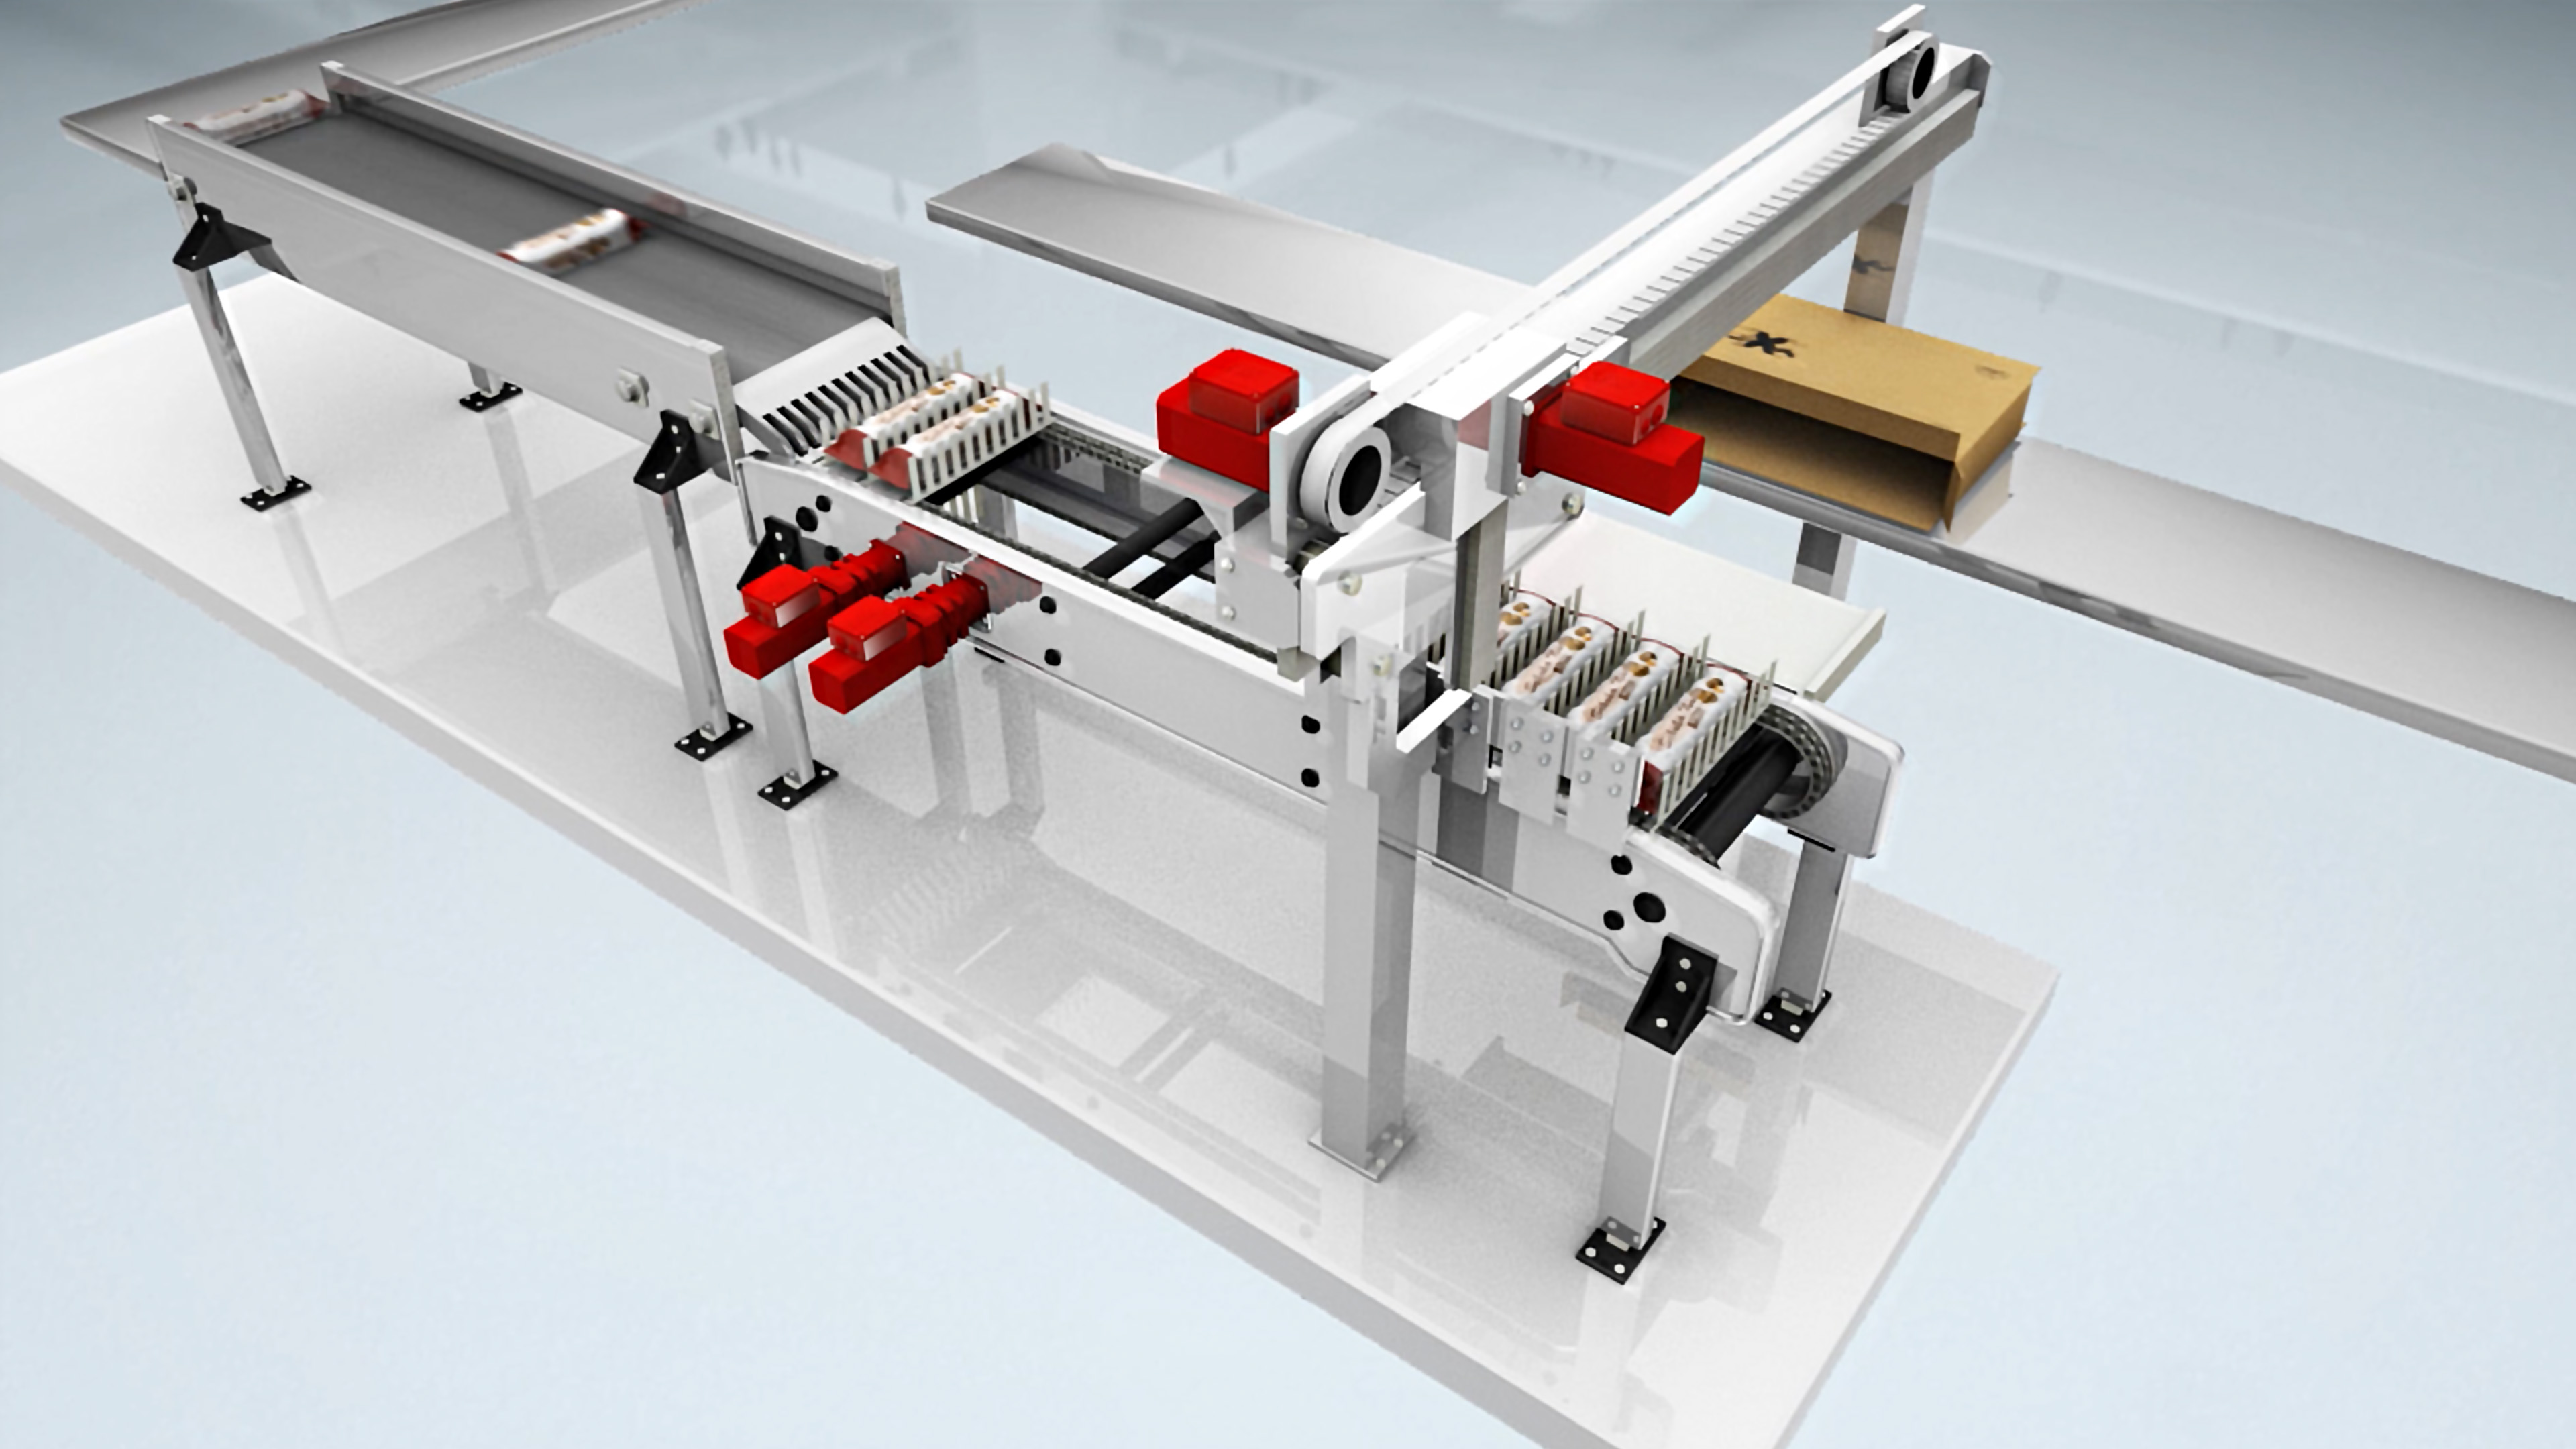 Packaging machine with red drives